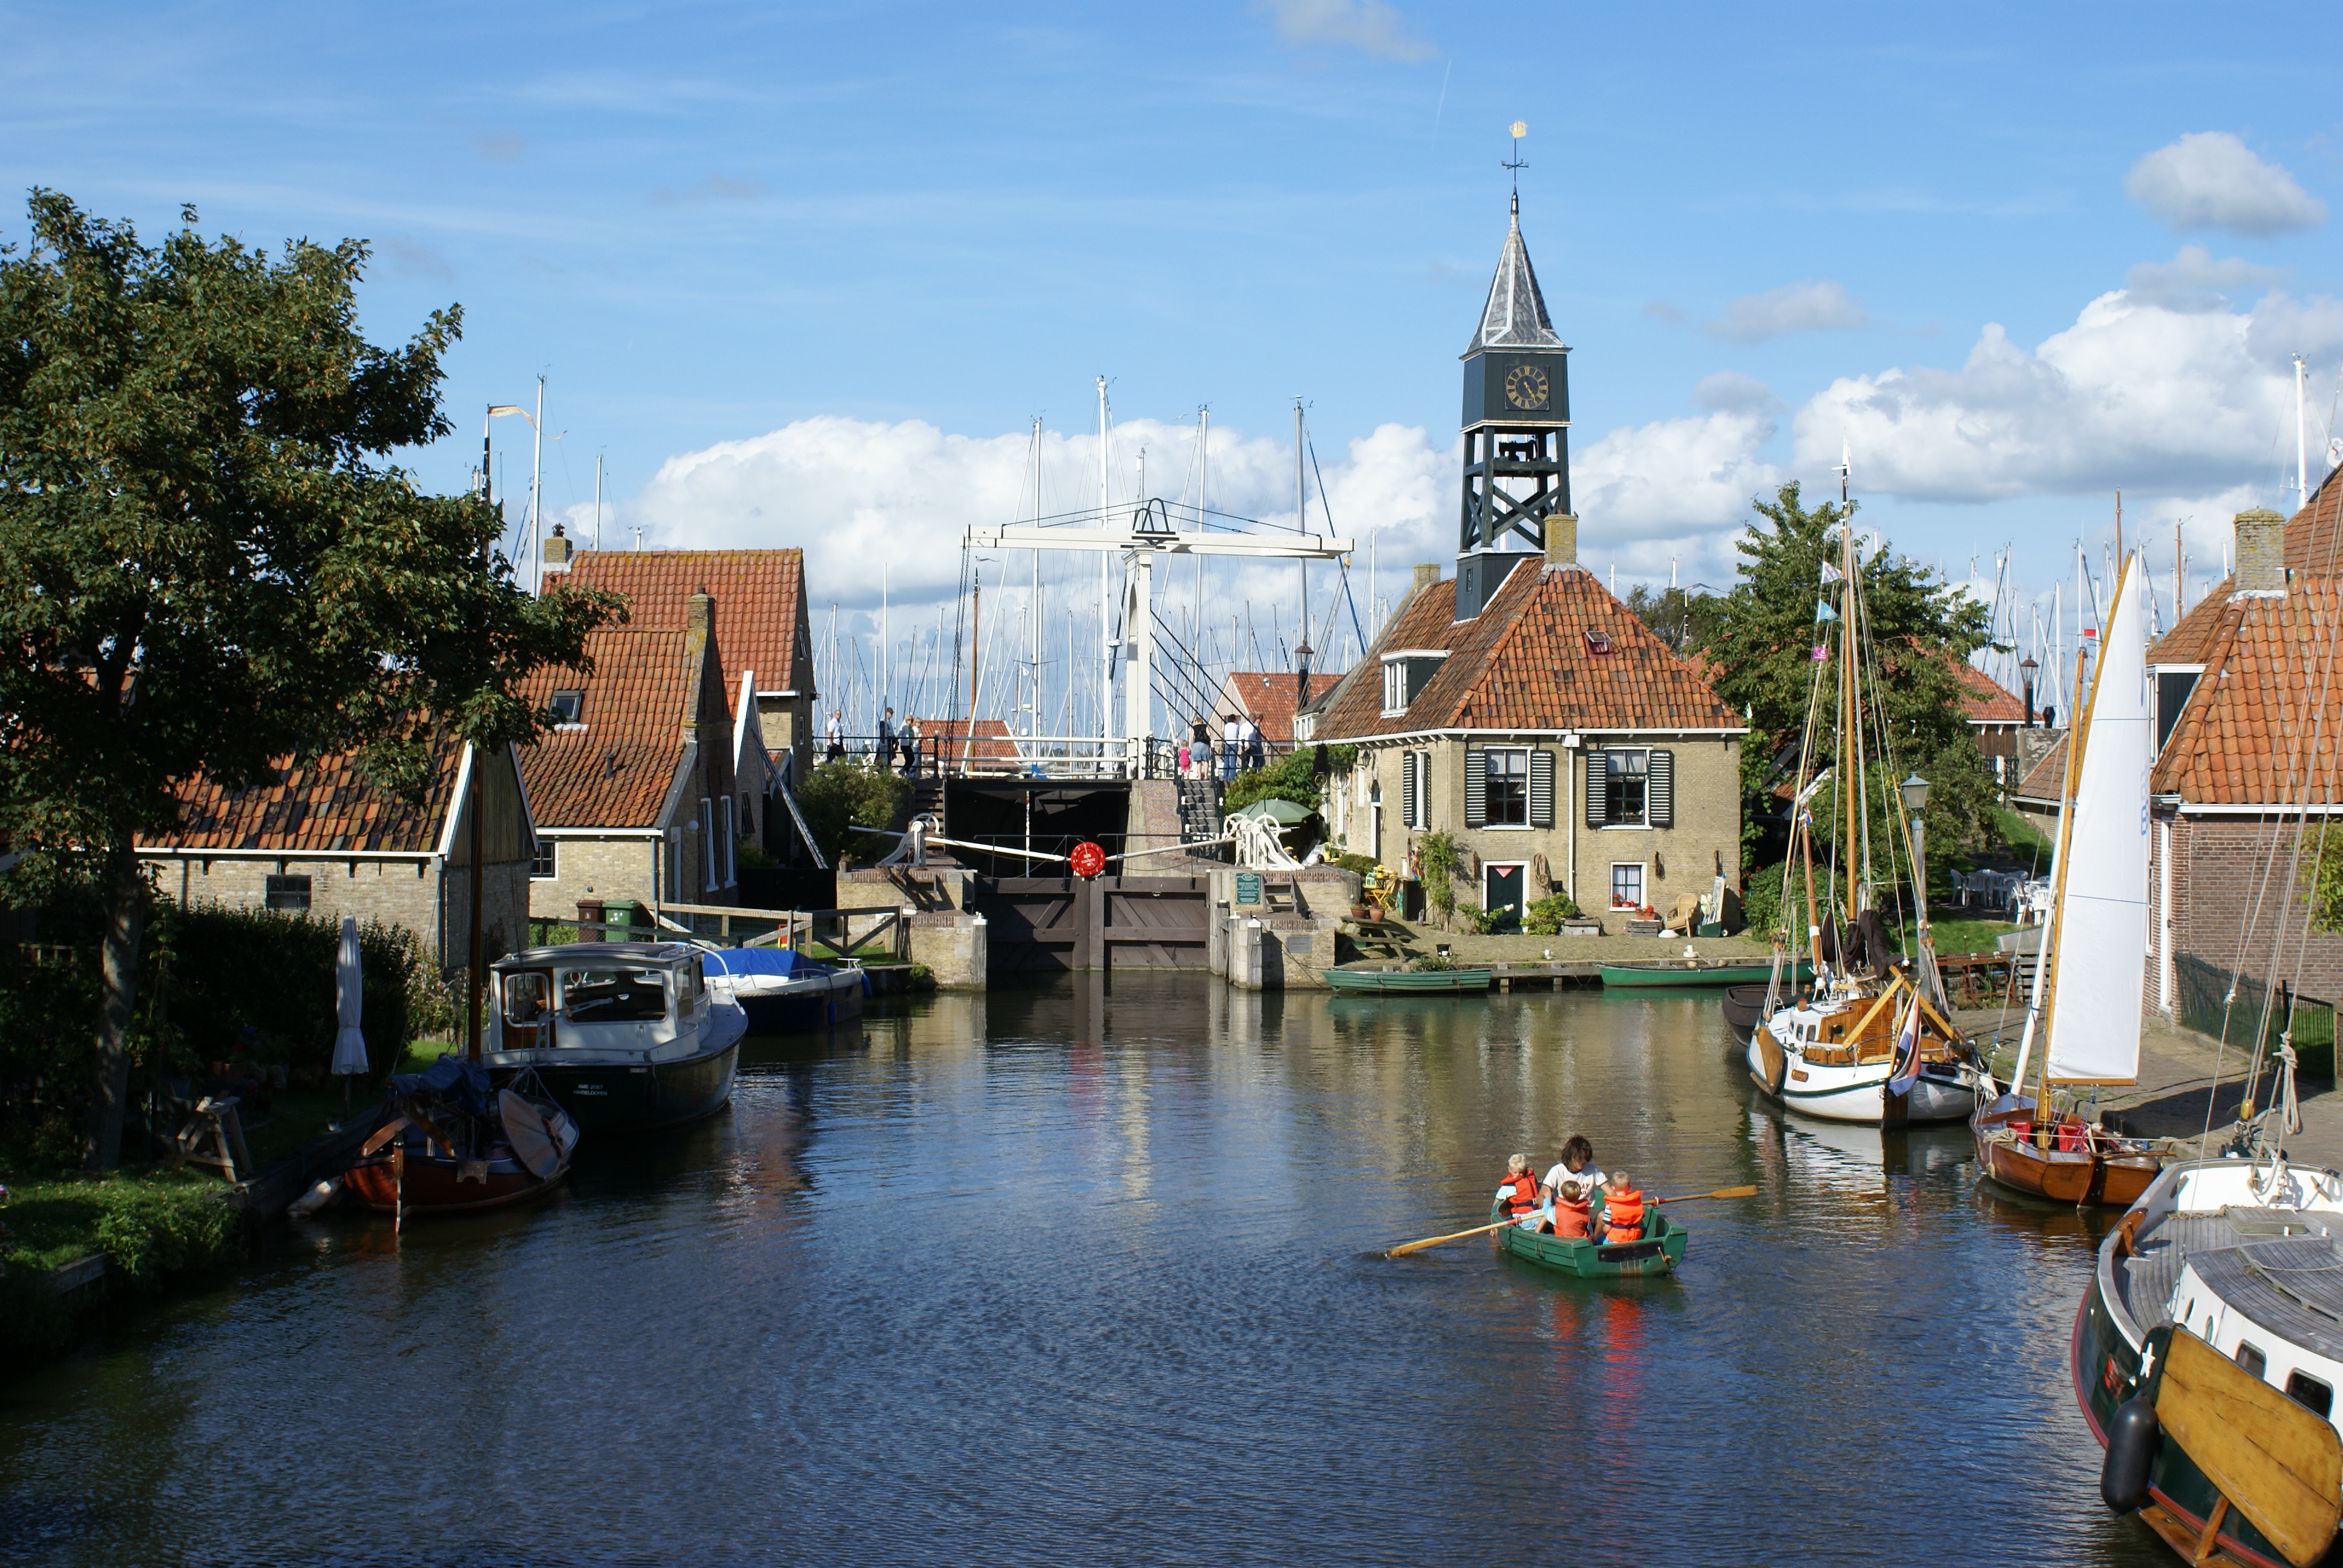 Canal view of Hindeloopen